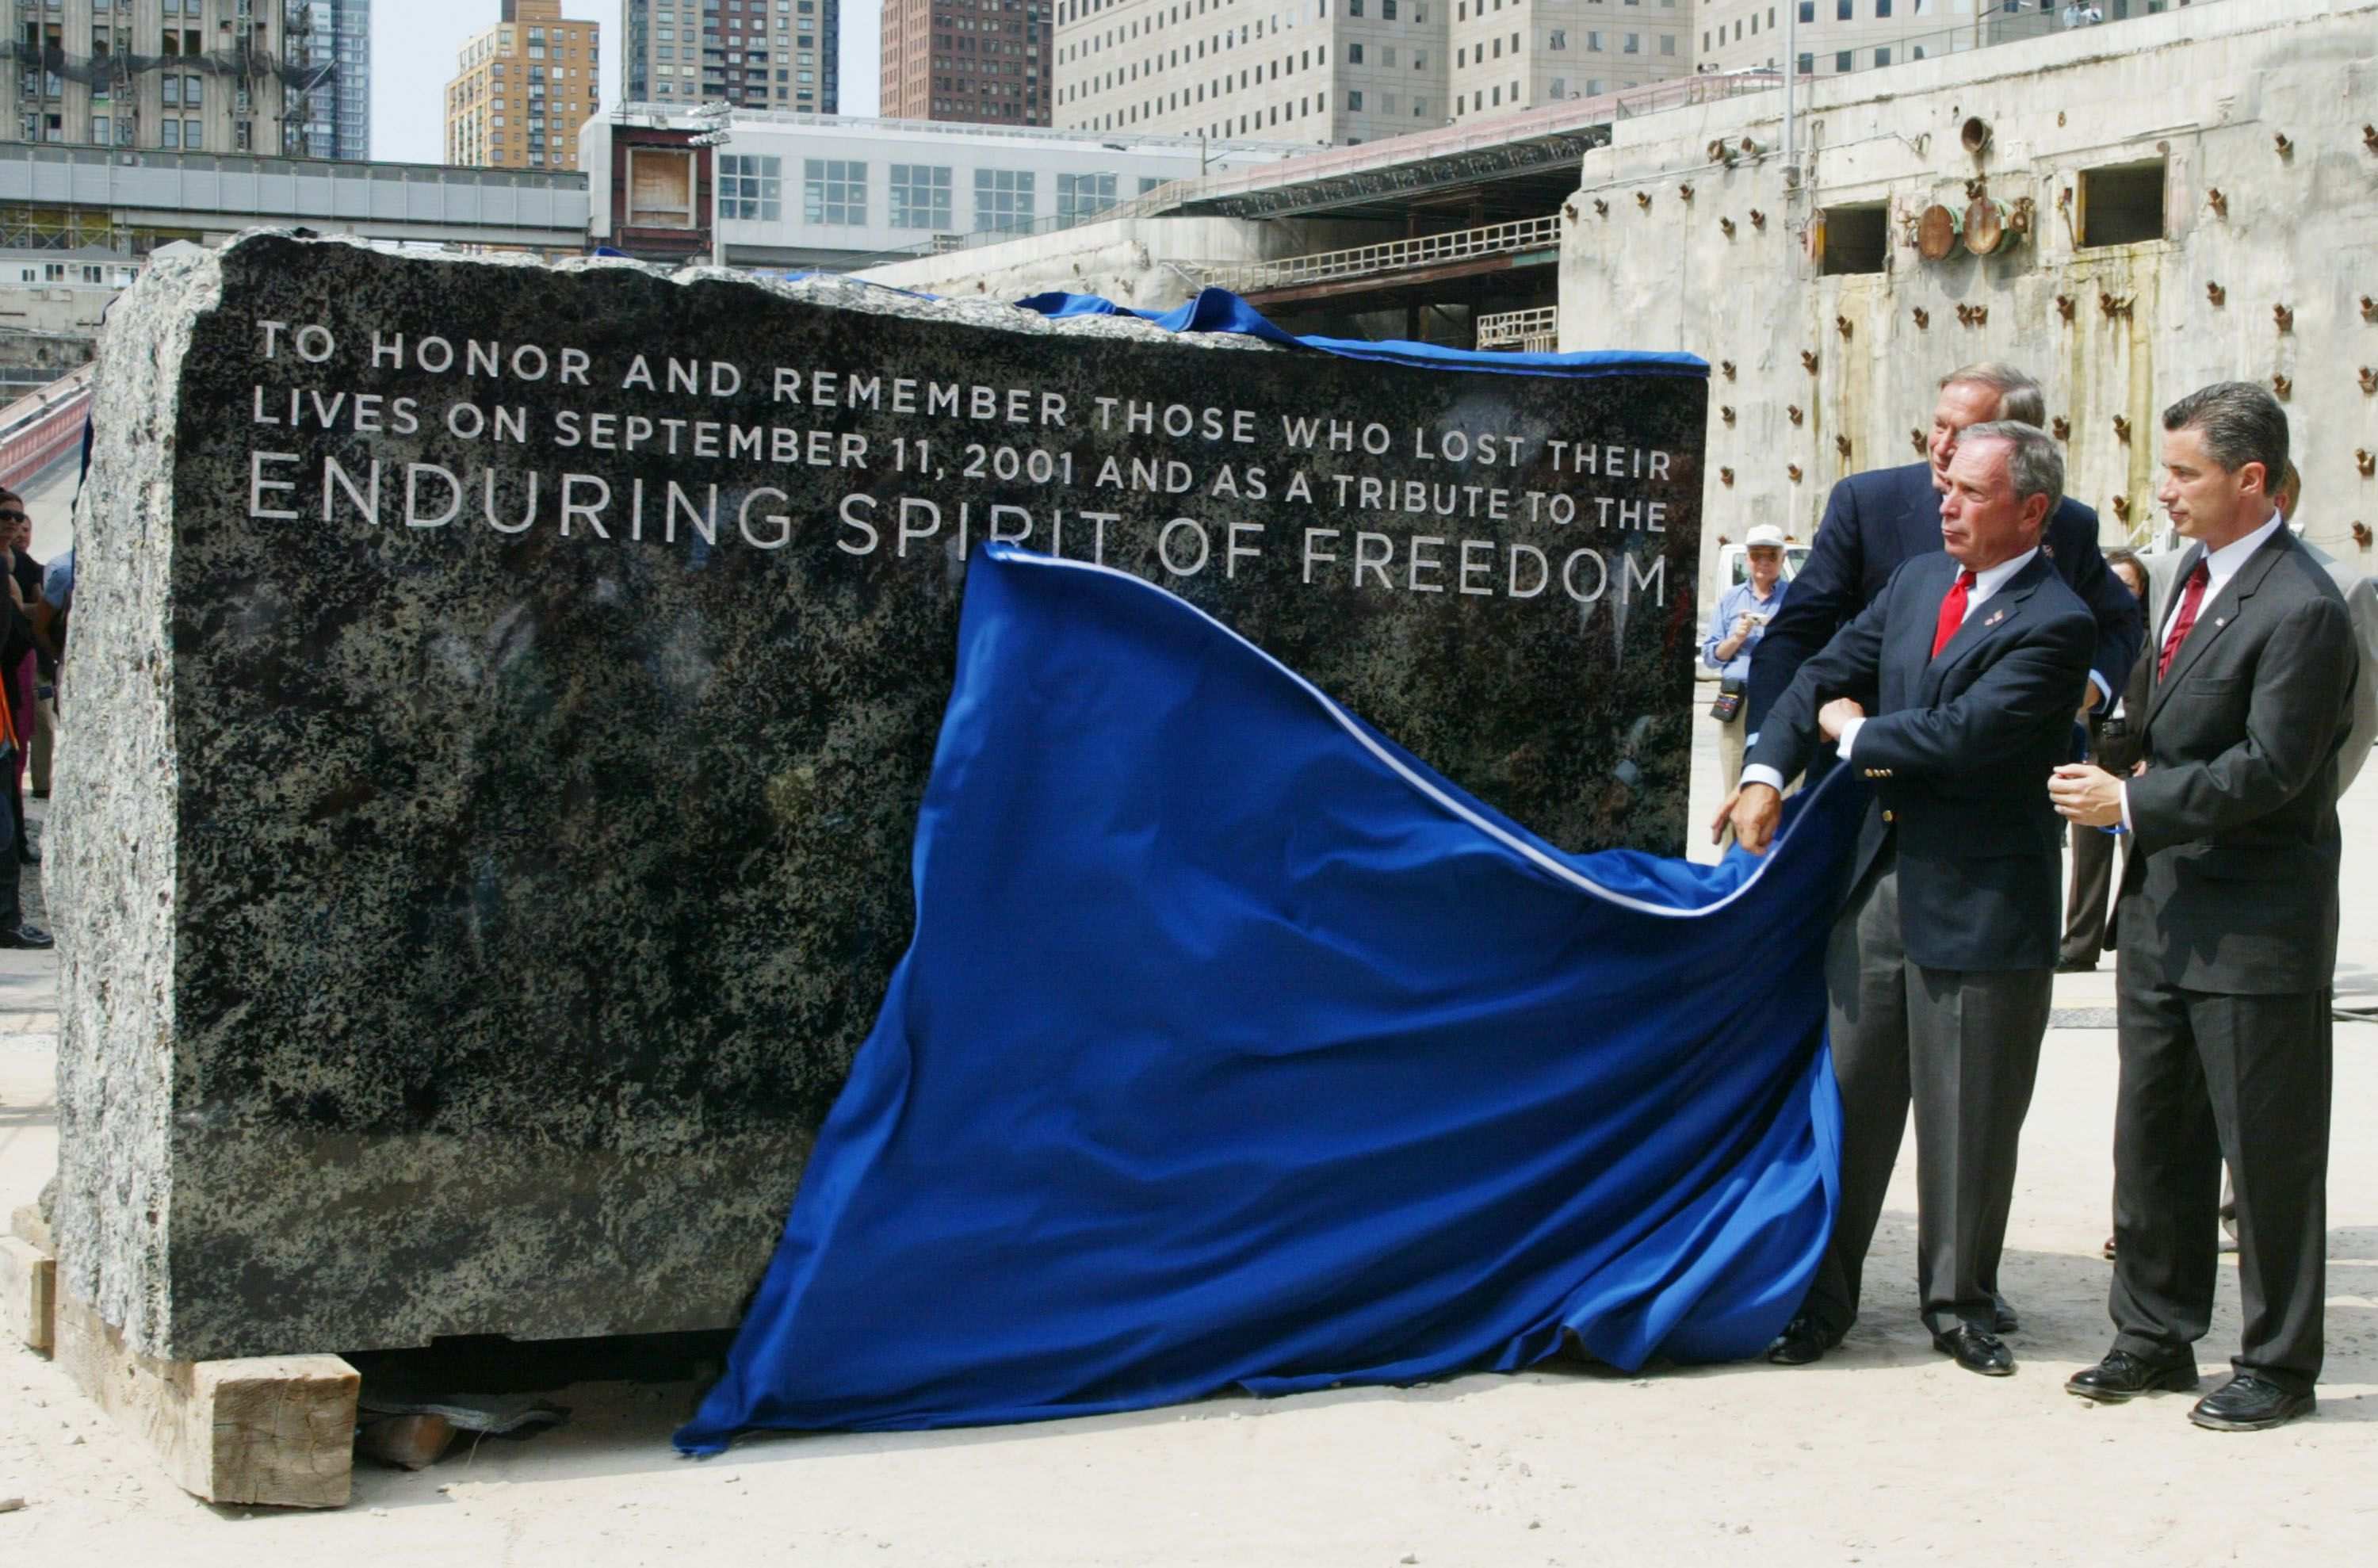 white men in suits and red ties unfurl a blue tarp from an engraves pieces of stone that says To honor and remember those who lost their lives on September 11, 2001 and as a tribute to the enduring spirit of Freedom